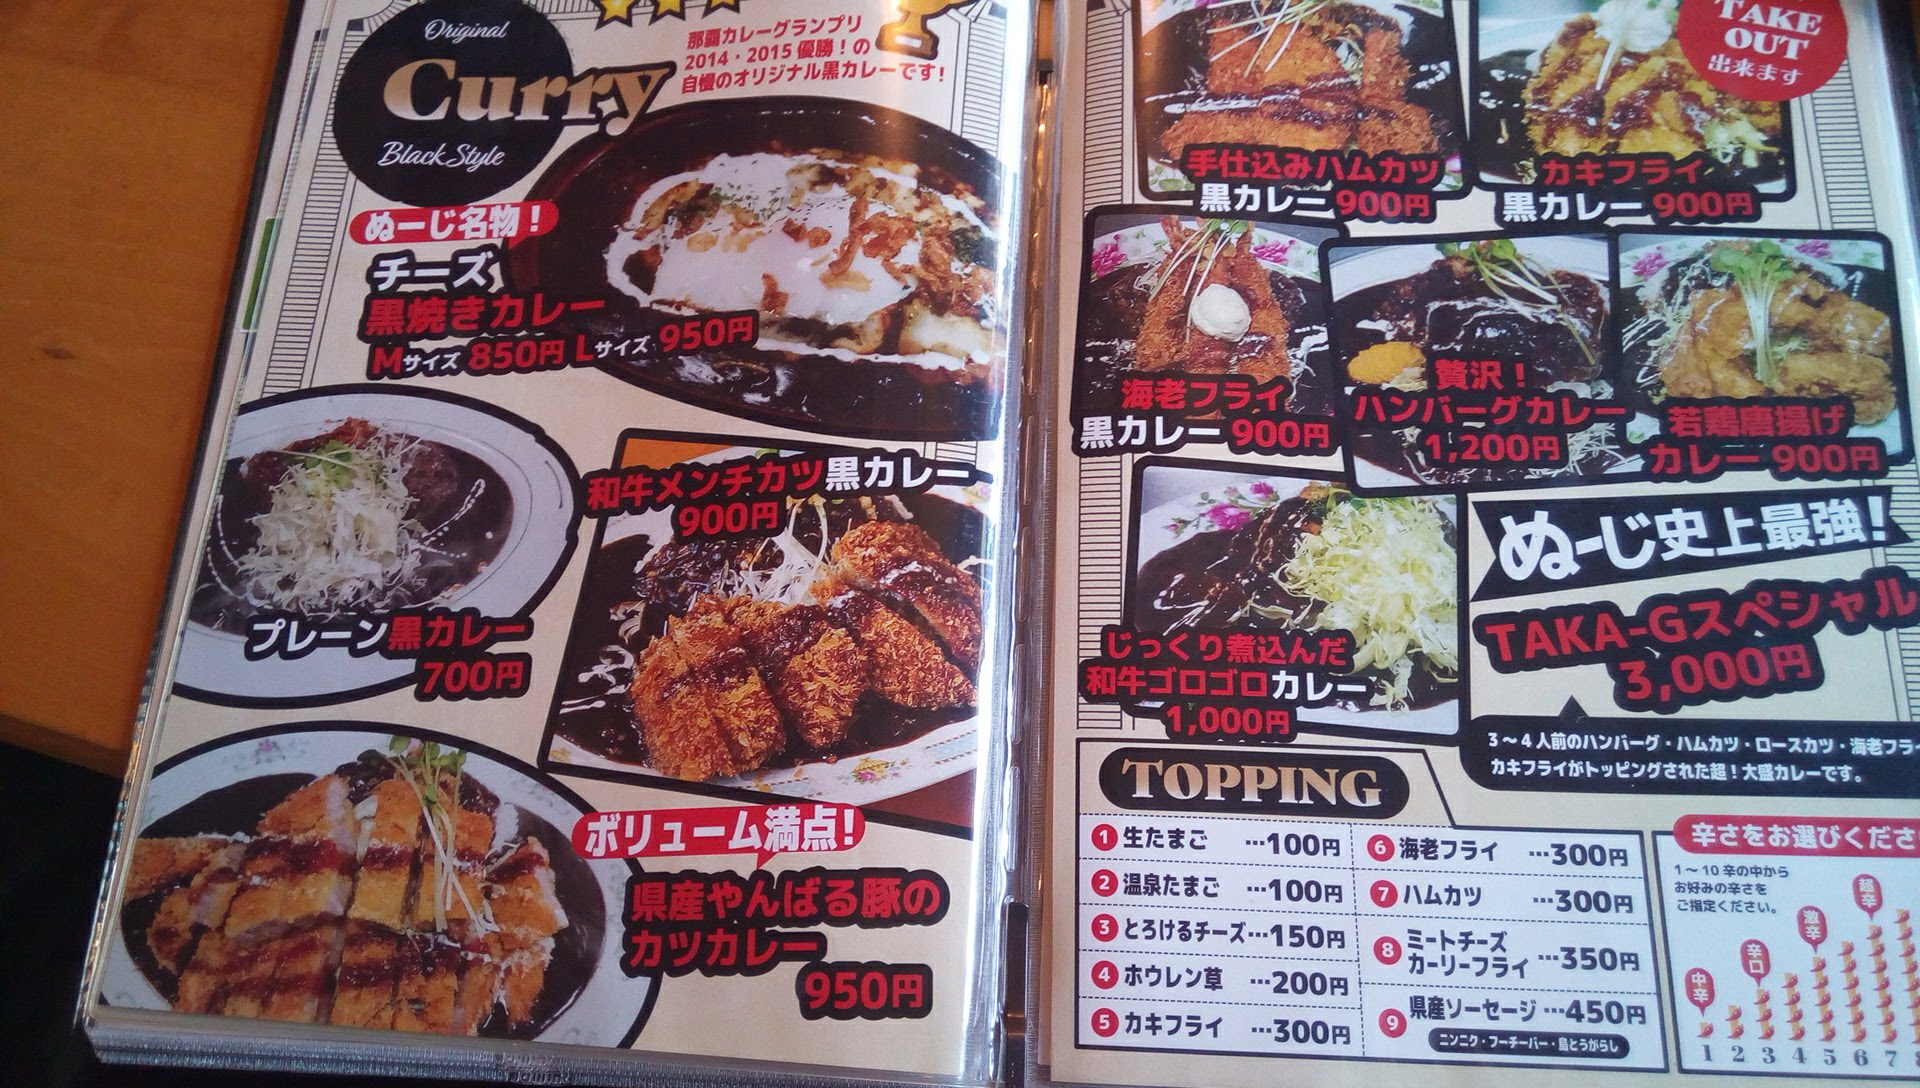 the menu of Nuji bonbon Z 4